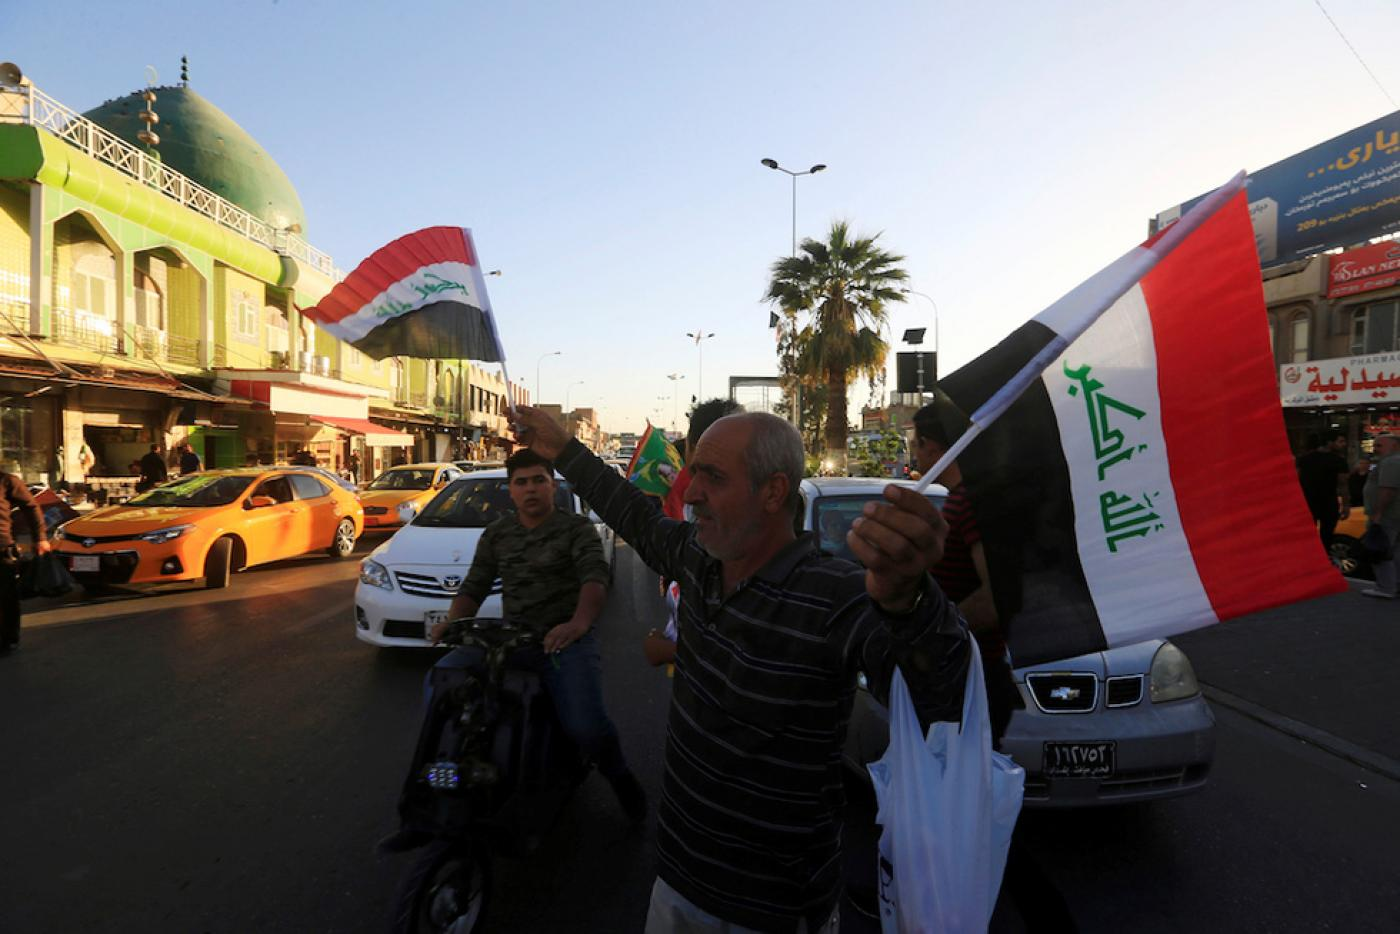 Iraqi army says it has achieved goals in Kirkuk operation | Middle